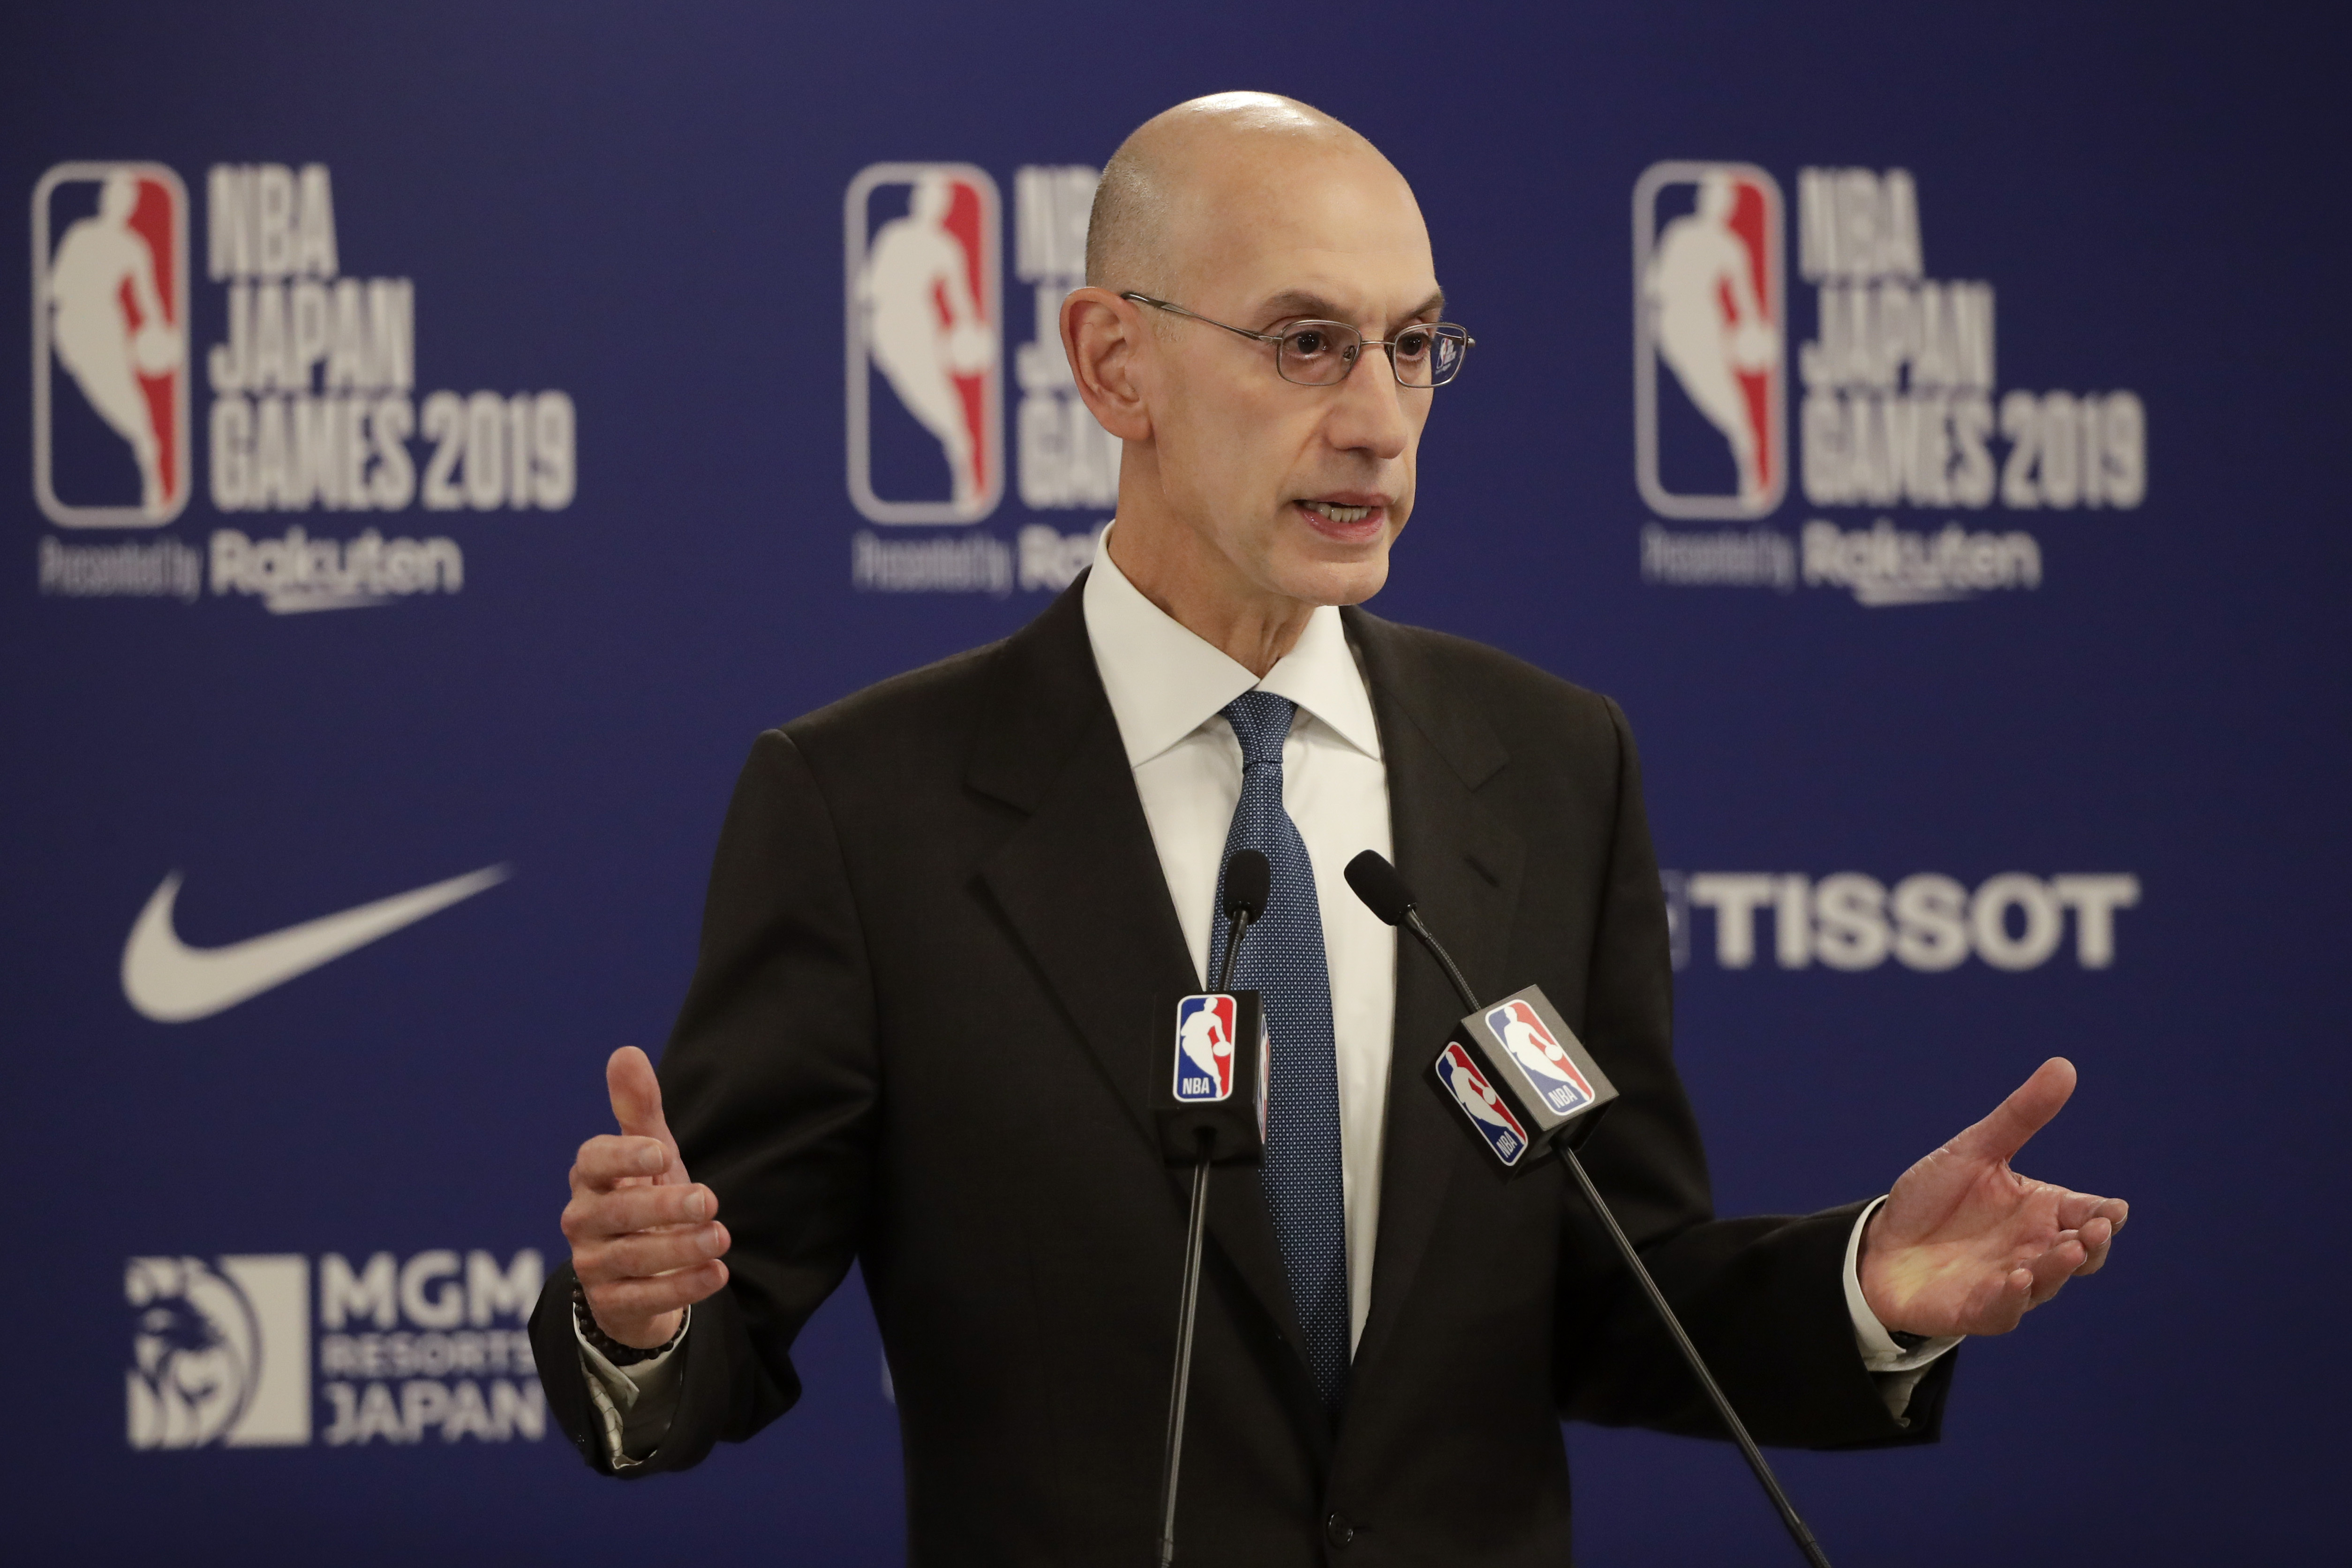 """""""We have worked together with the Players Association to establish a restart plan that prioritizes health and safety, preserves competitive fairness and provides a platform to address social justice issues,"""" NBA Commissioner Adam Silver said."""